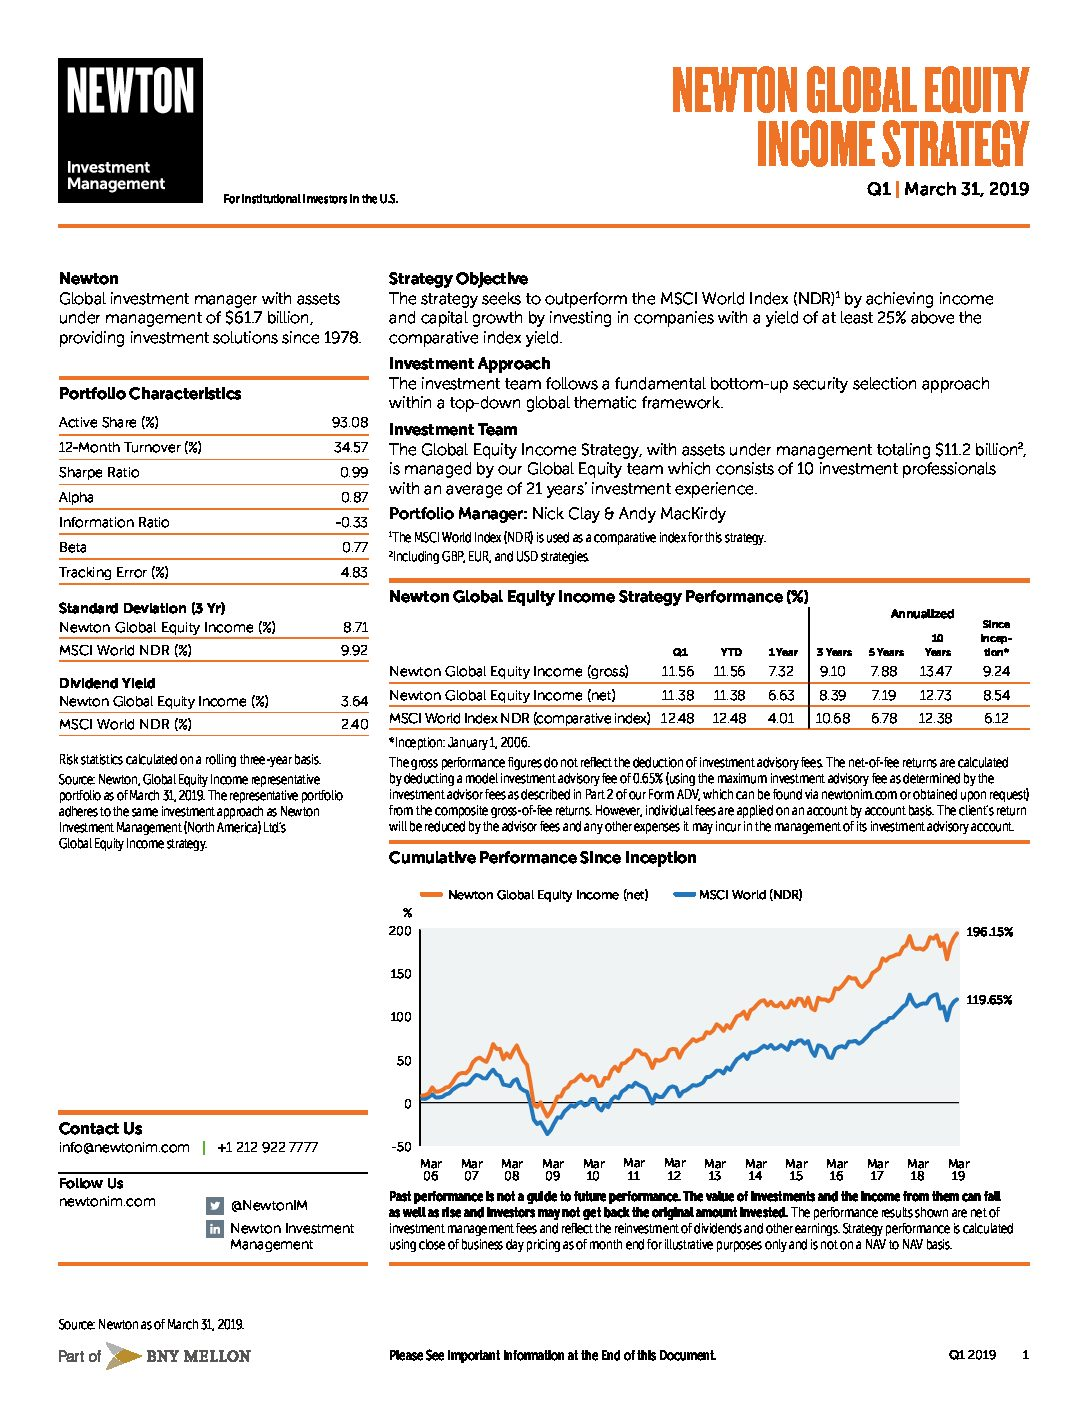 NIMNA Global Equity Income strategy factsheet